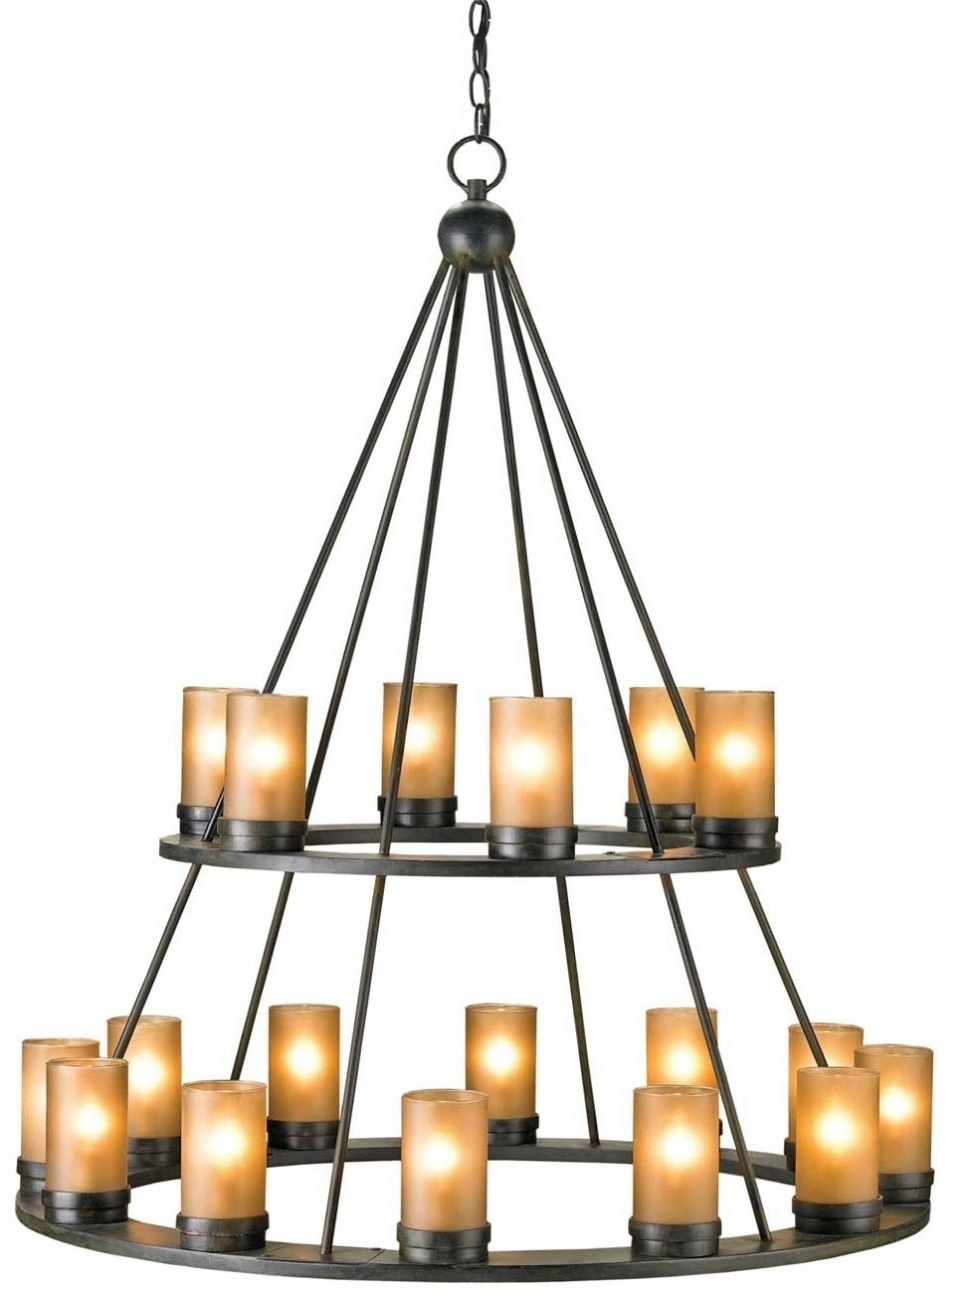 Newest Outdoor Hanging Bar Lights Within Chandeliers Design : Awesome Farmhouse Chandelier Cottage Homeâ (View 7 of 20)